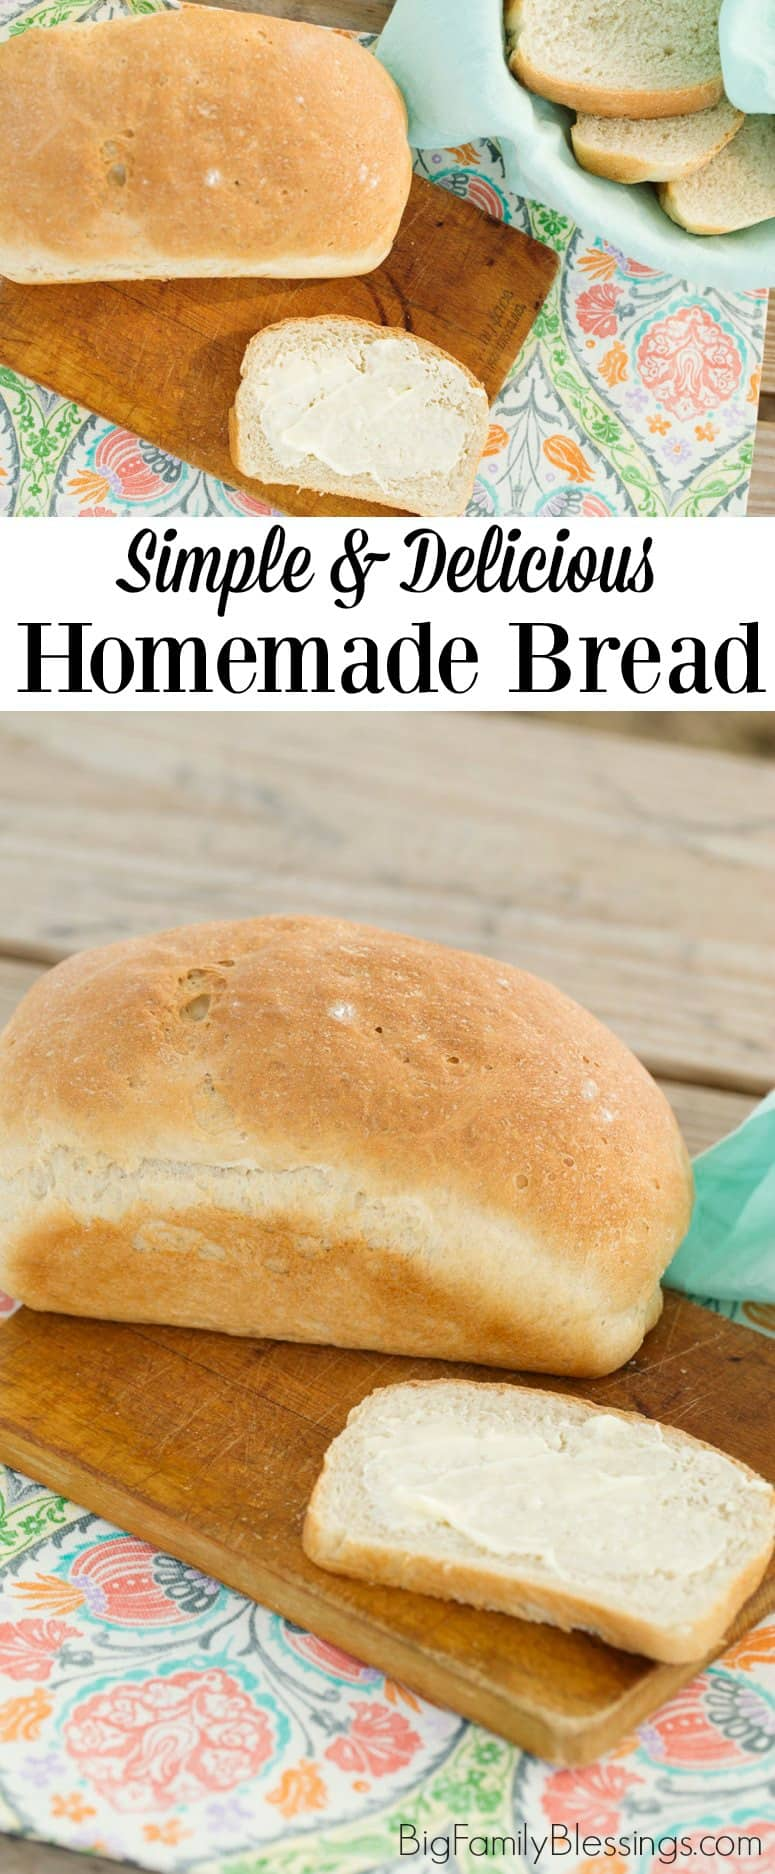 Best Ever Homemade Bread Recipe